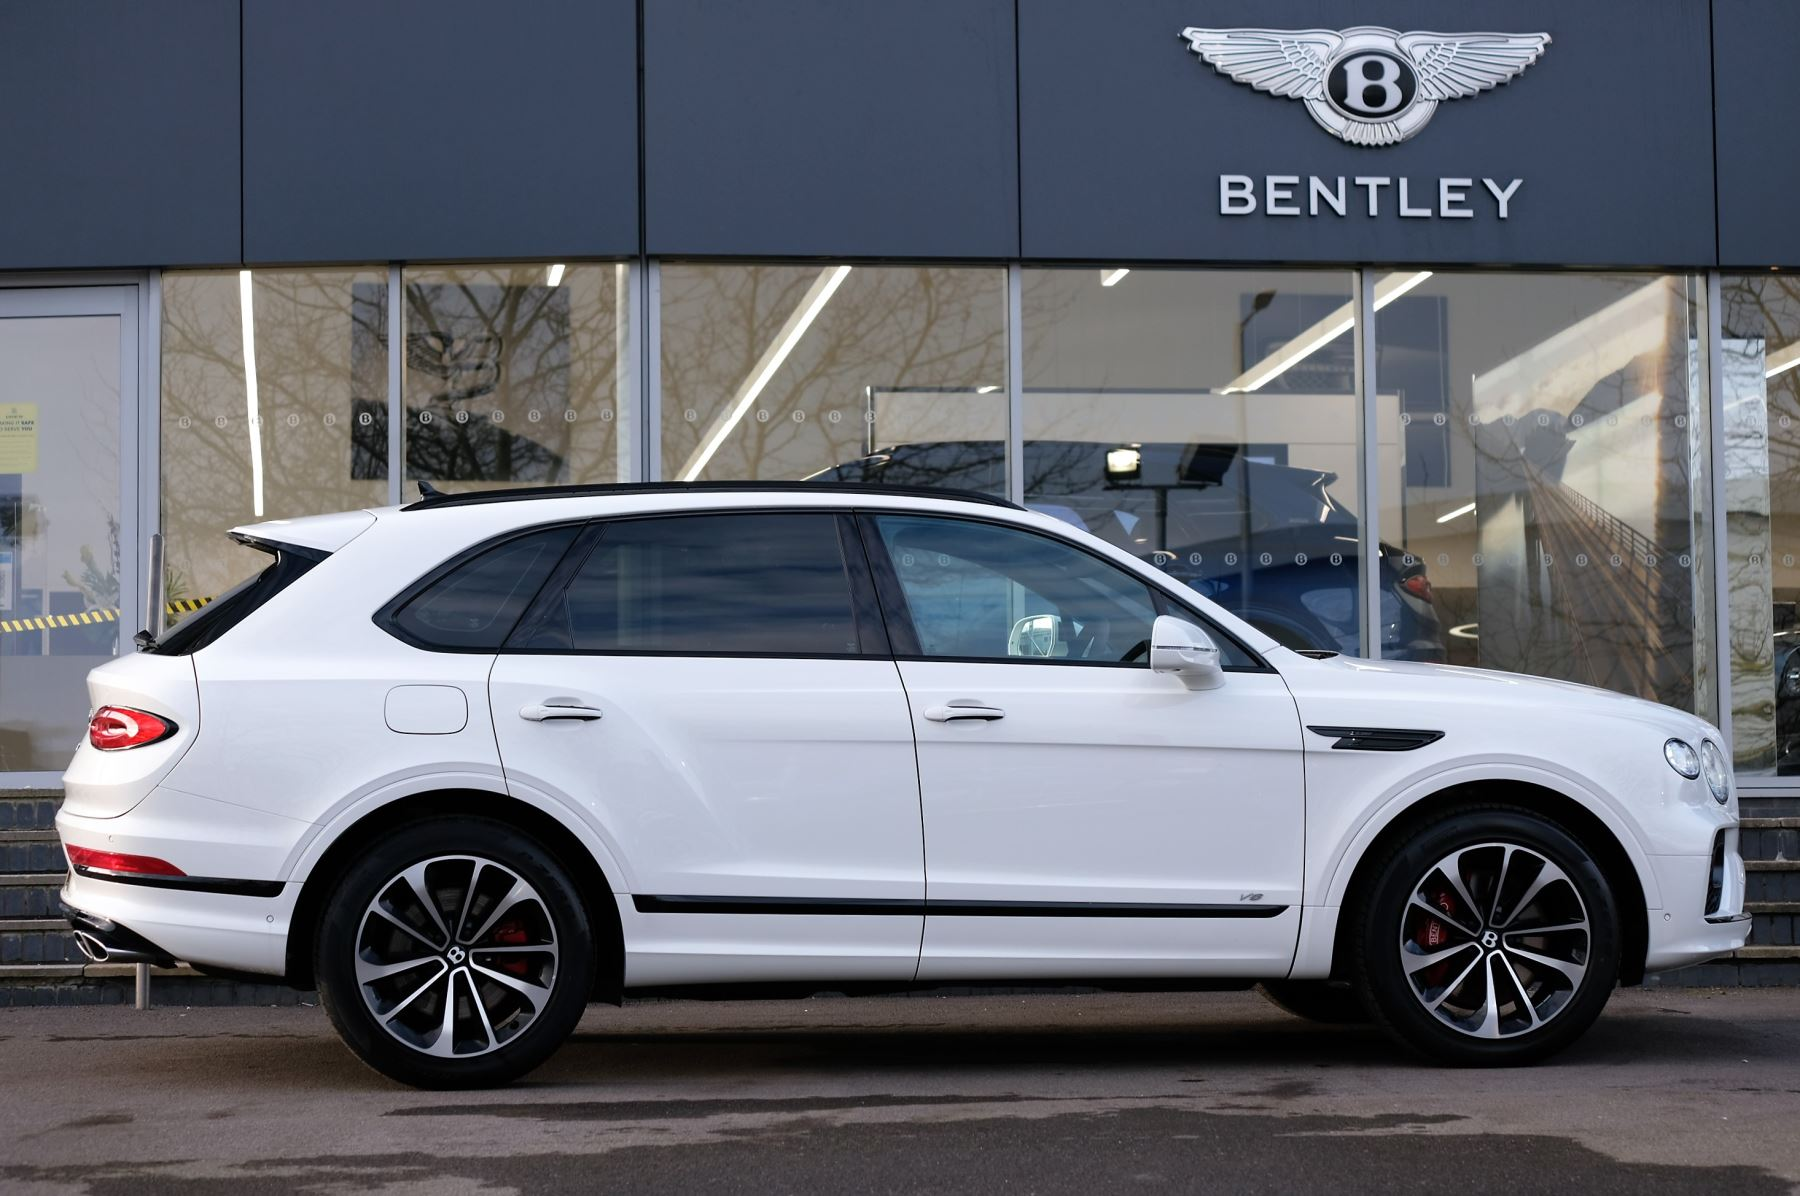 Bentley Bentayga 4.0 V8 - Touring and Front Seat Comfort Specification  image 3